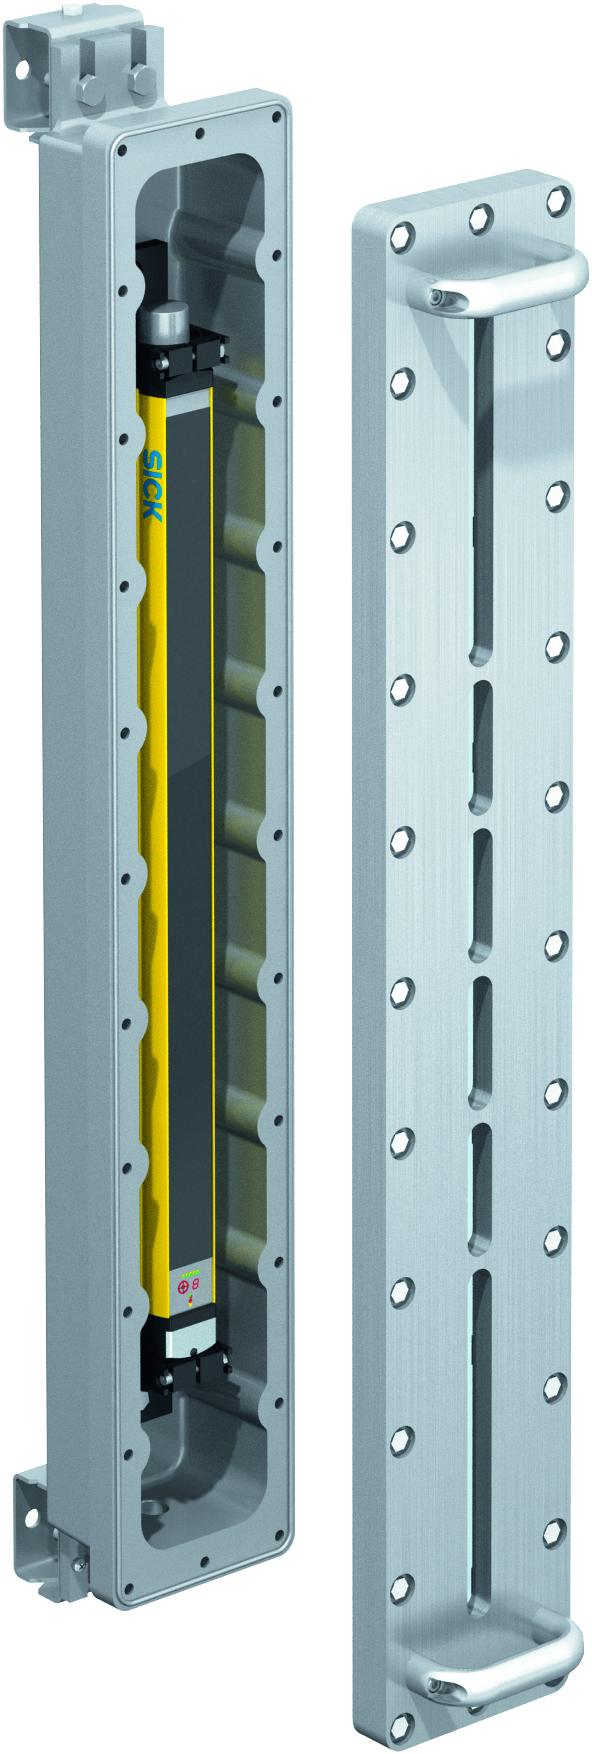 The DeTec4 Core Ex, C4000 Select Ex And C4000 Advanced Ex Light Curtains  Are All In One Pre Assembled Safety Devices Suitable For The Gas, Coal And  Power ...